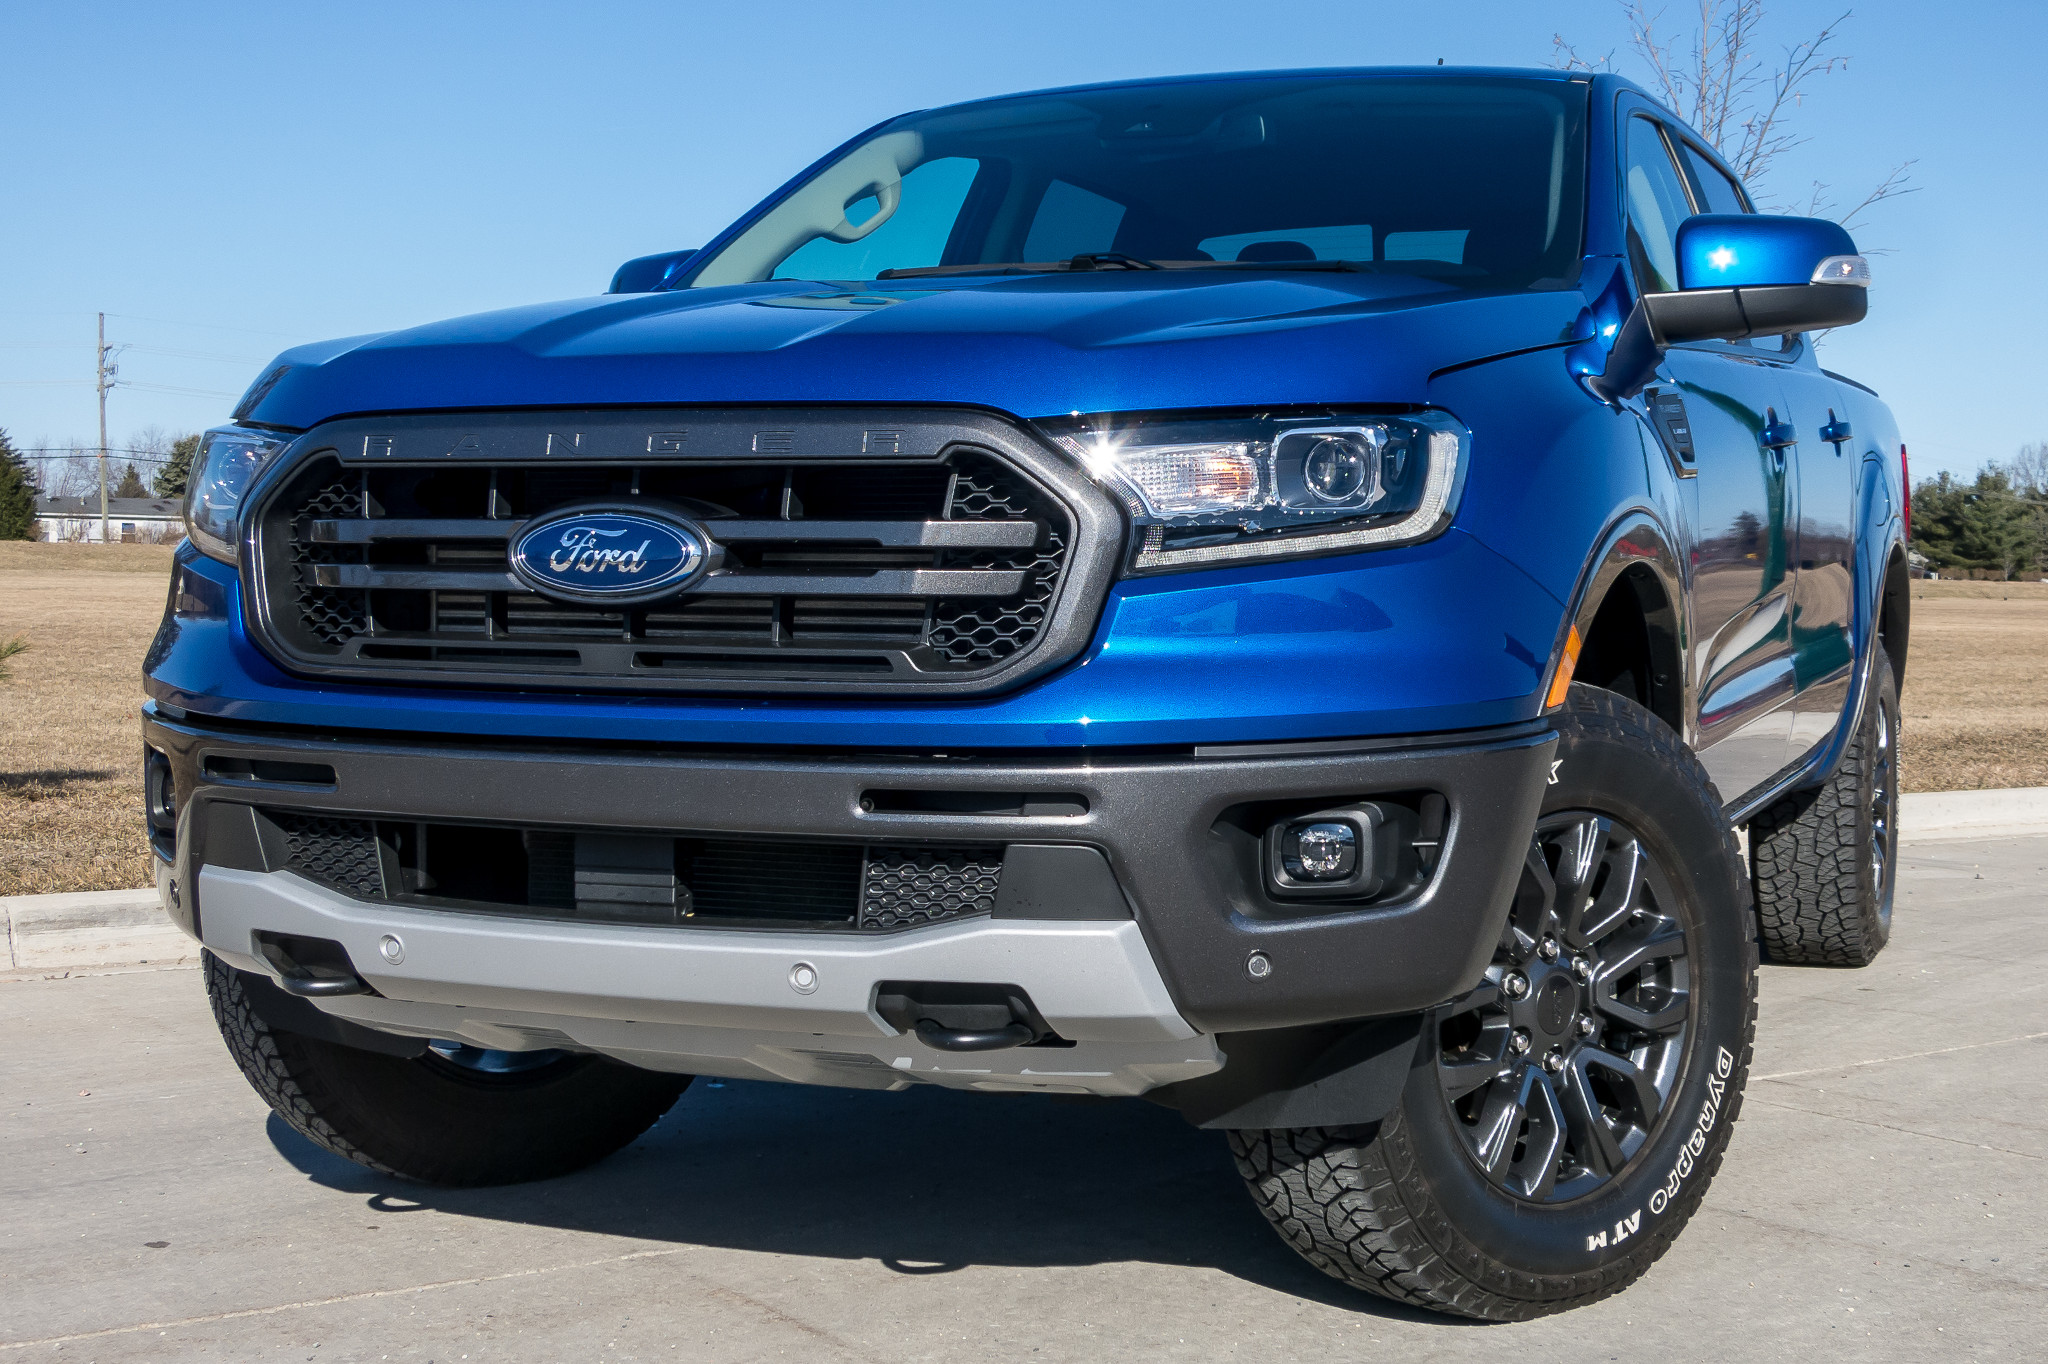 2019 Ford Ranger: 7 Things We Like, 4 Things We Don't